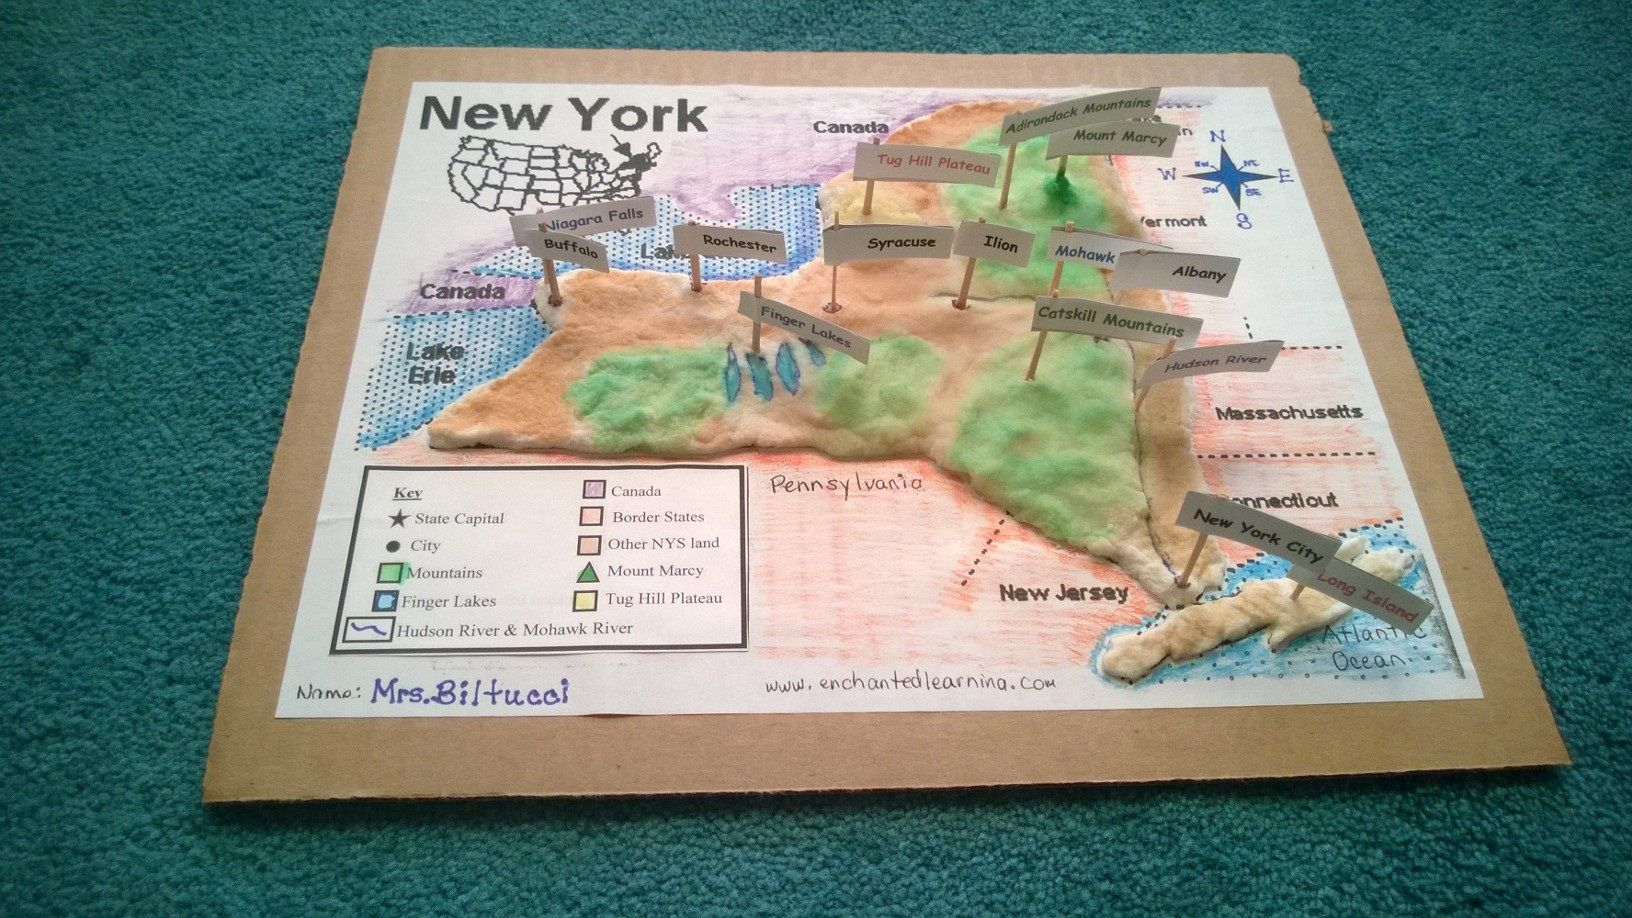 Map Of New York State 4th Grade.This Is A Fourth Grade Chromebook Classroom In New York